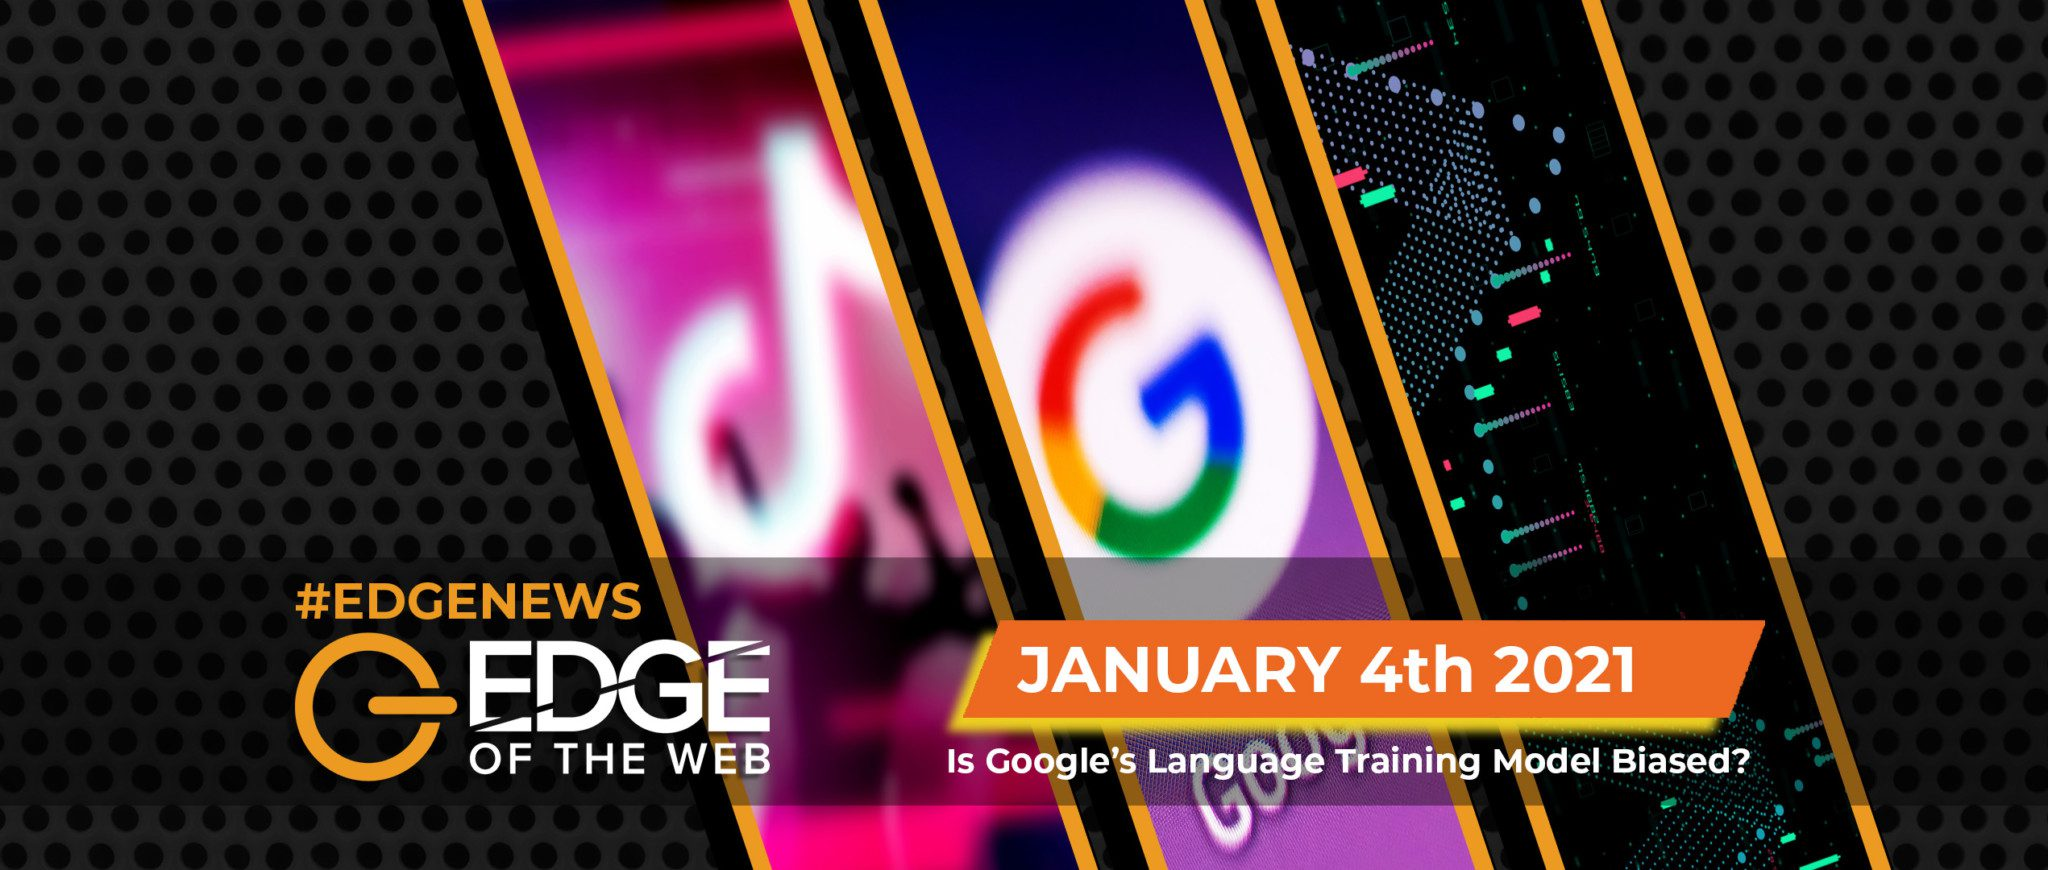 383 | News from the EDGE: Week of January 4, 2021